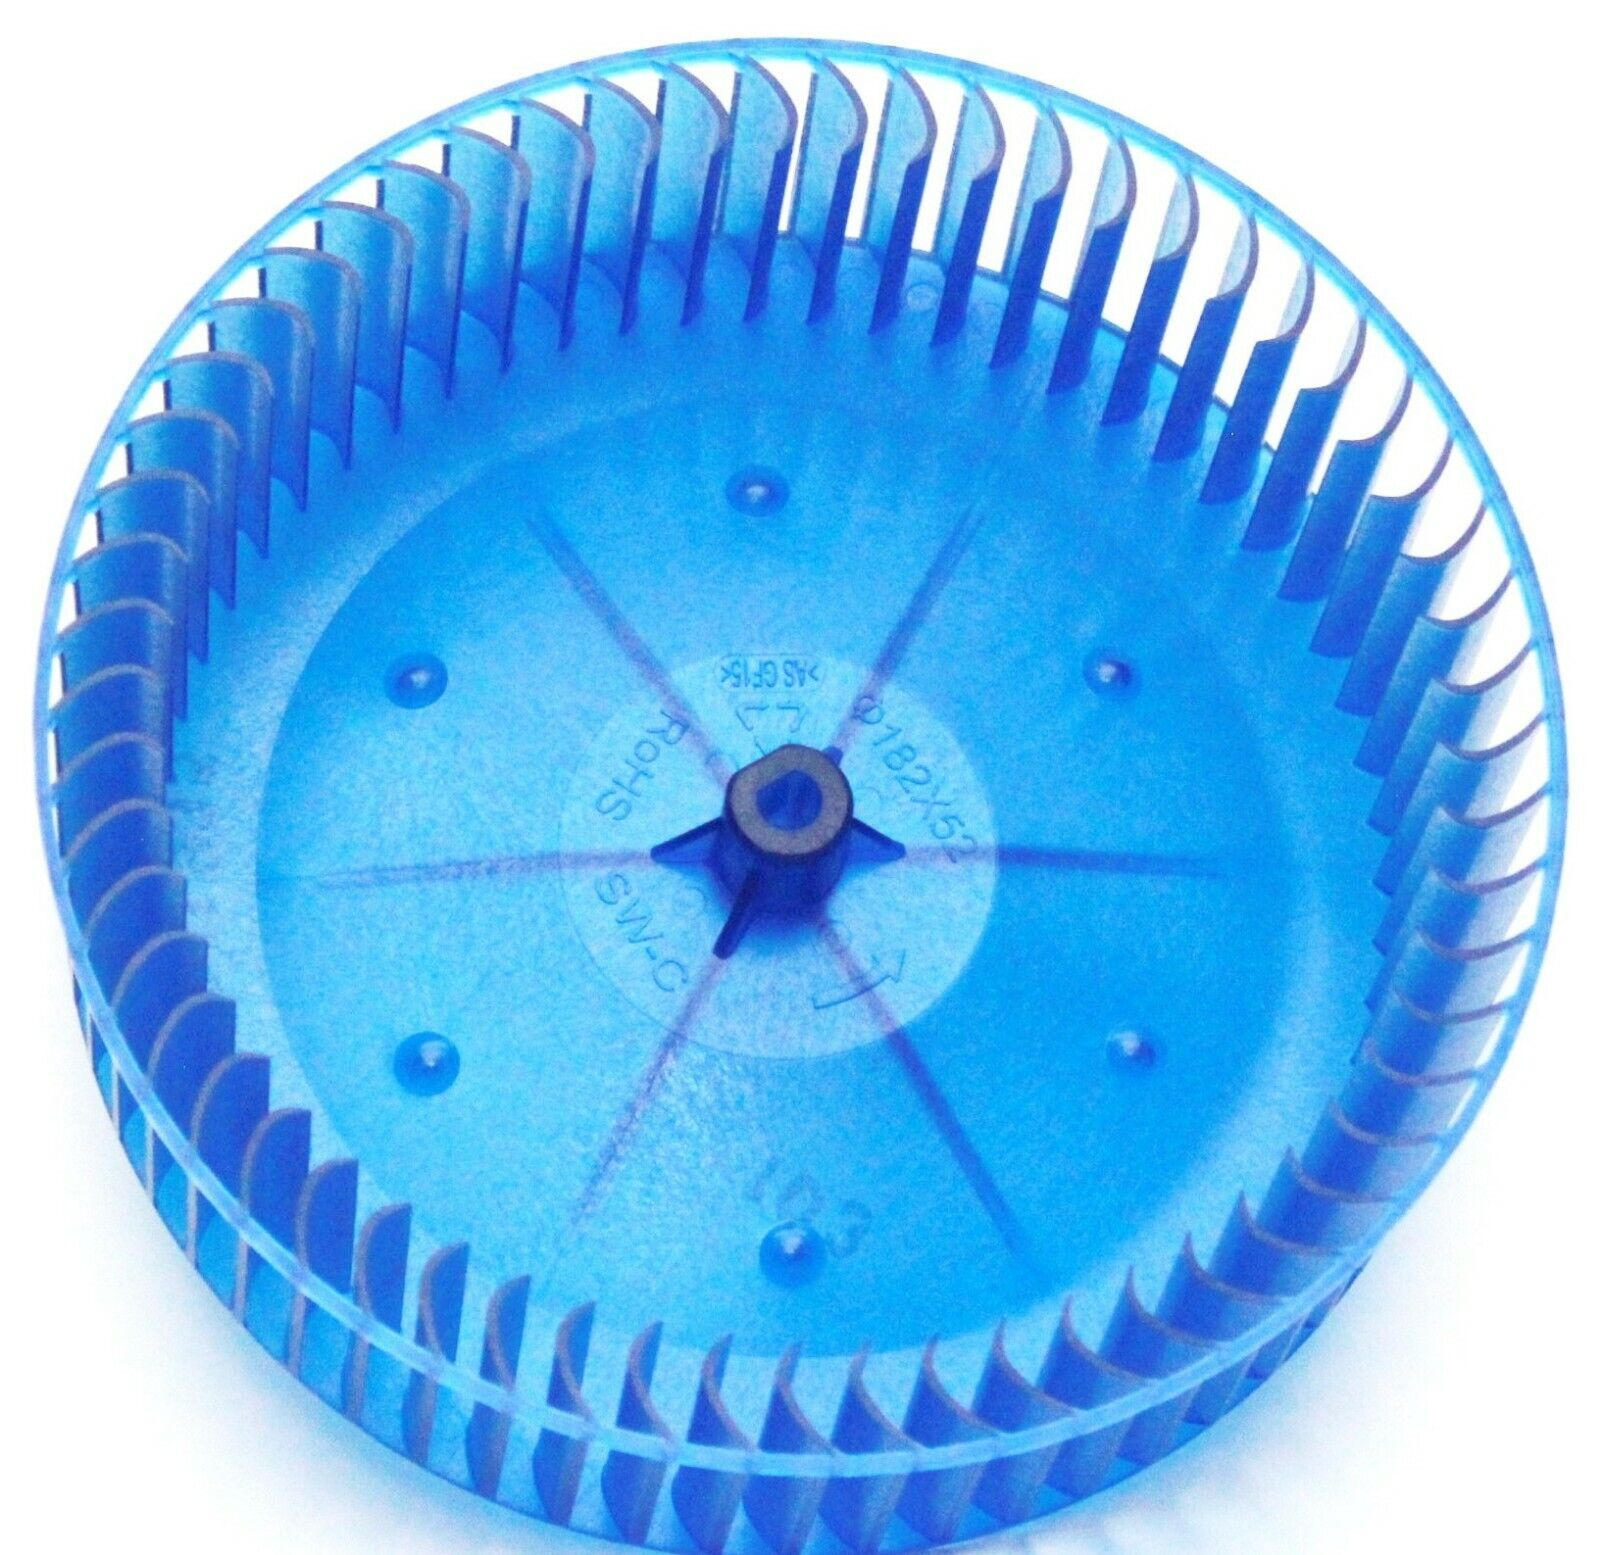 1 pc Room Air Conditioner Blower Wheel/Centrifugal Fan for D